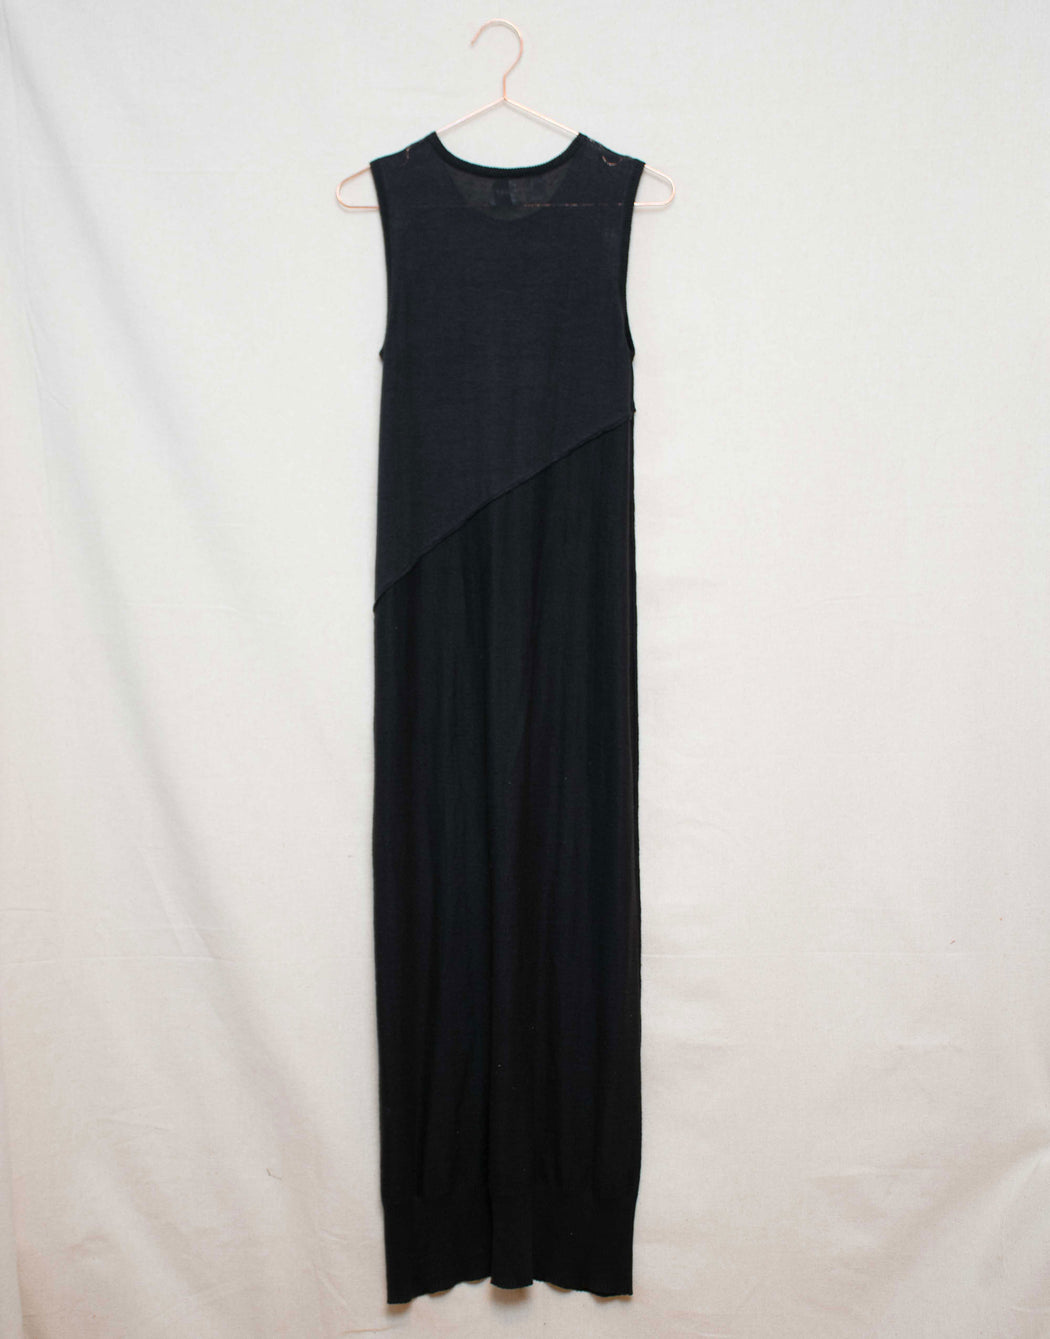 DKNY Sleeveless Maxi Dress